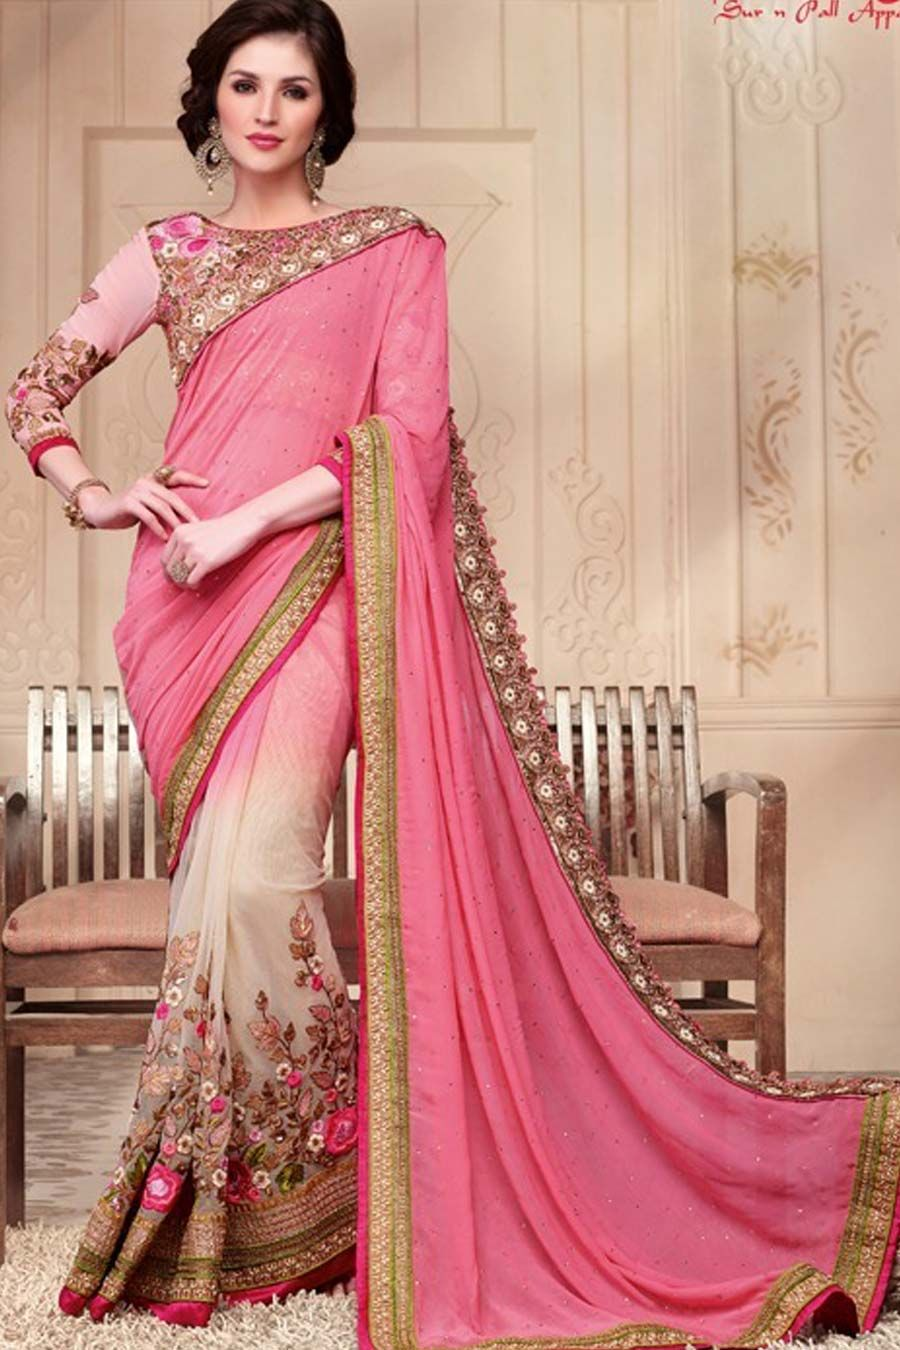 Pink Georgette + Net Wedding Saree With Blouse | Indian Sarees ...